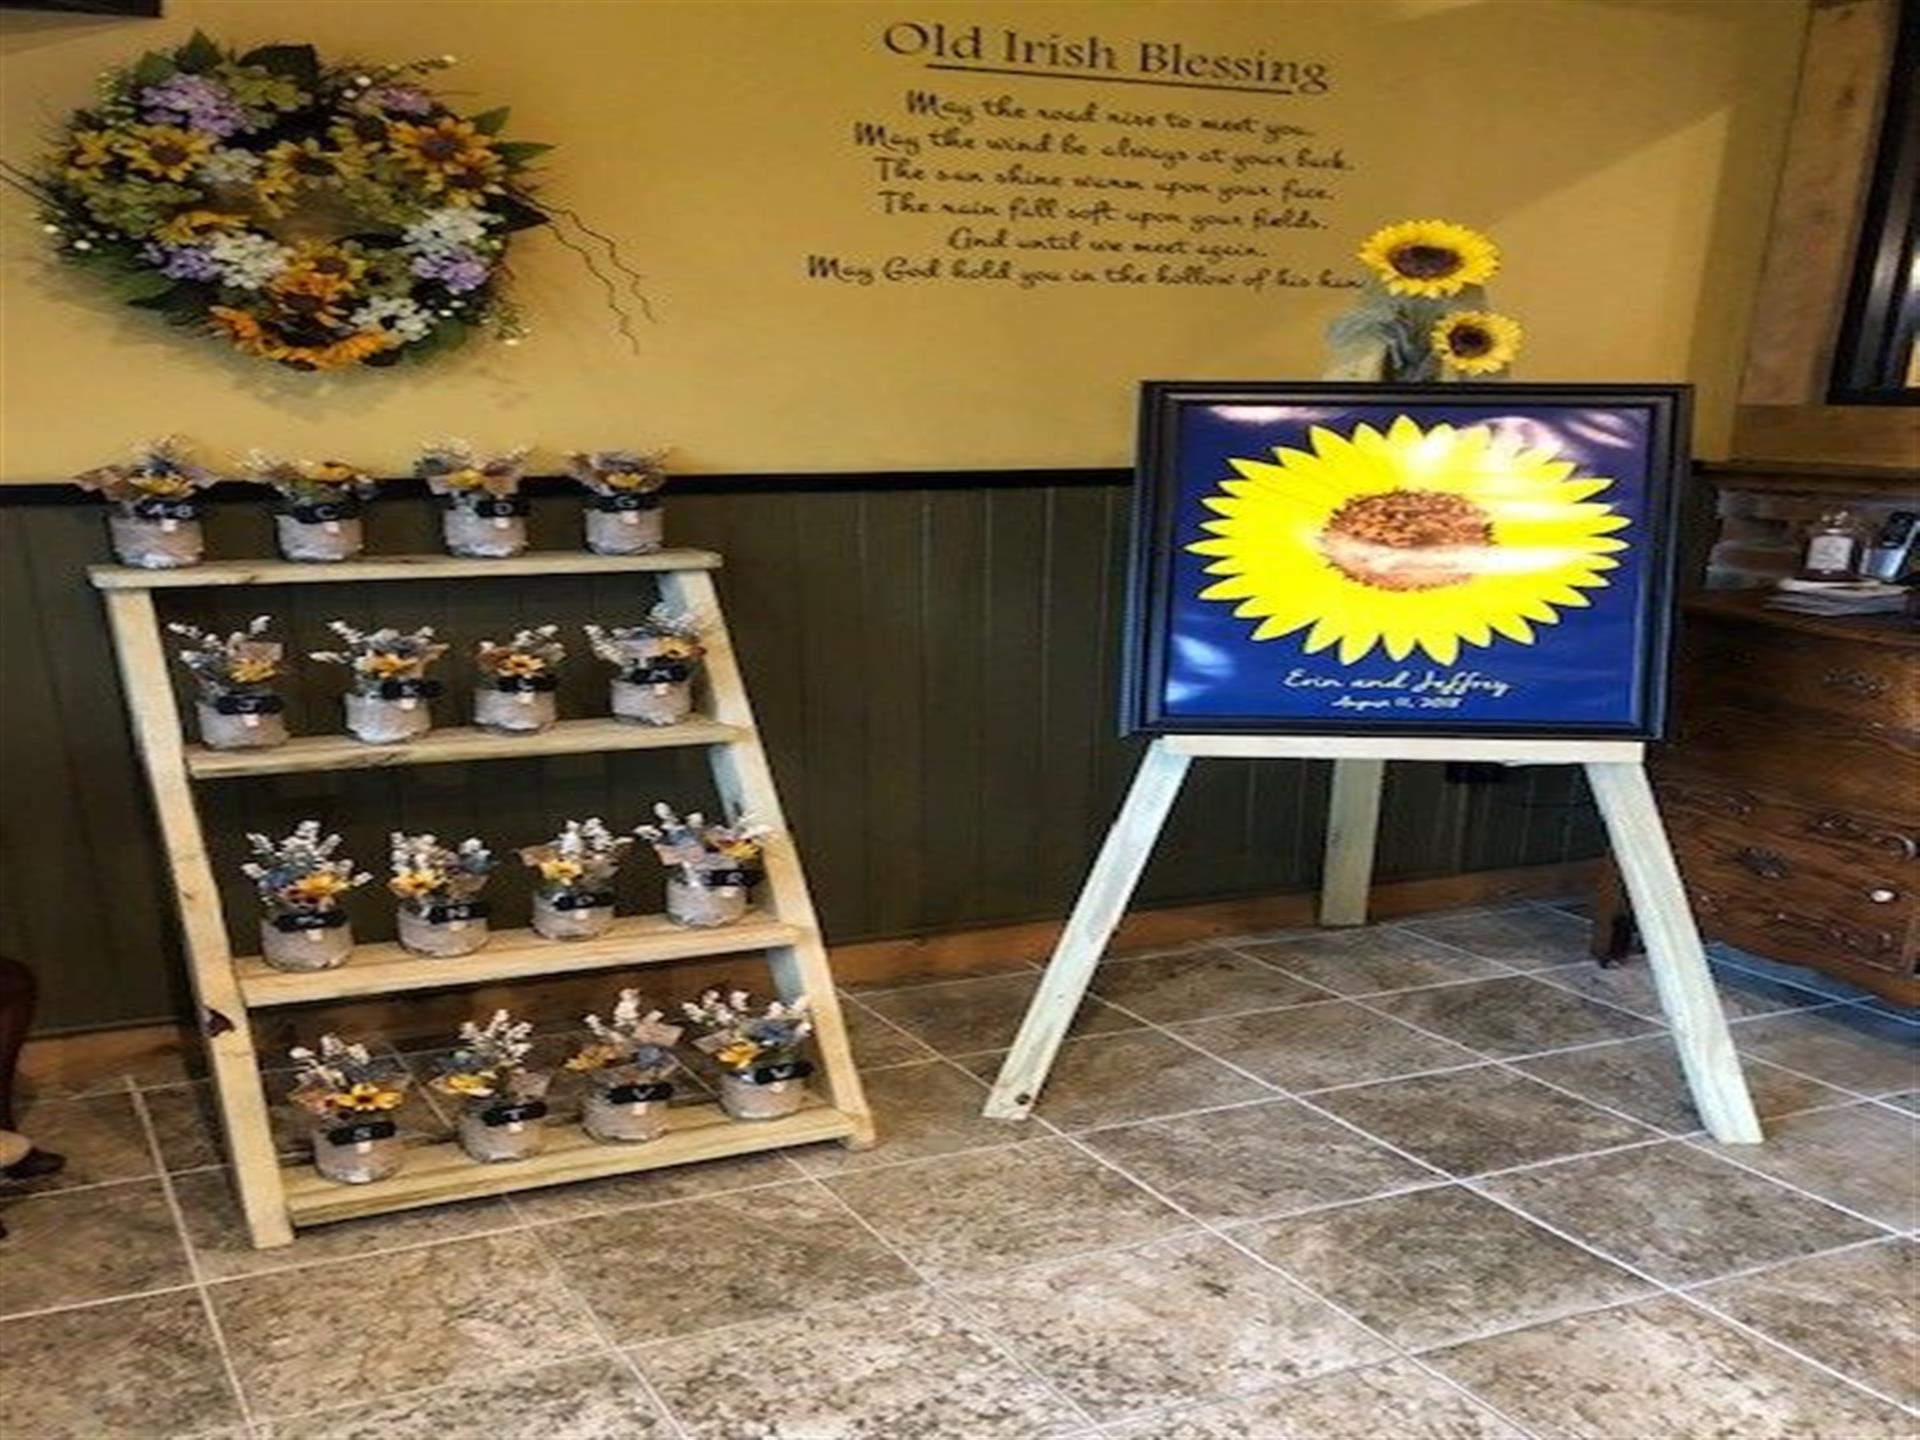 tiered stand with favors on it and a sunflower painting on an easel